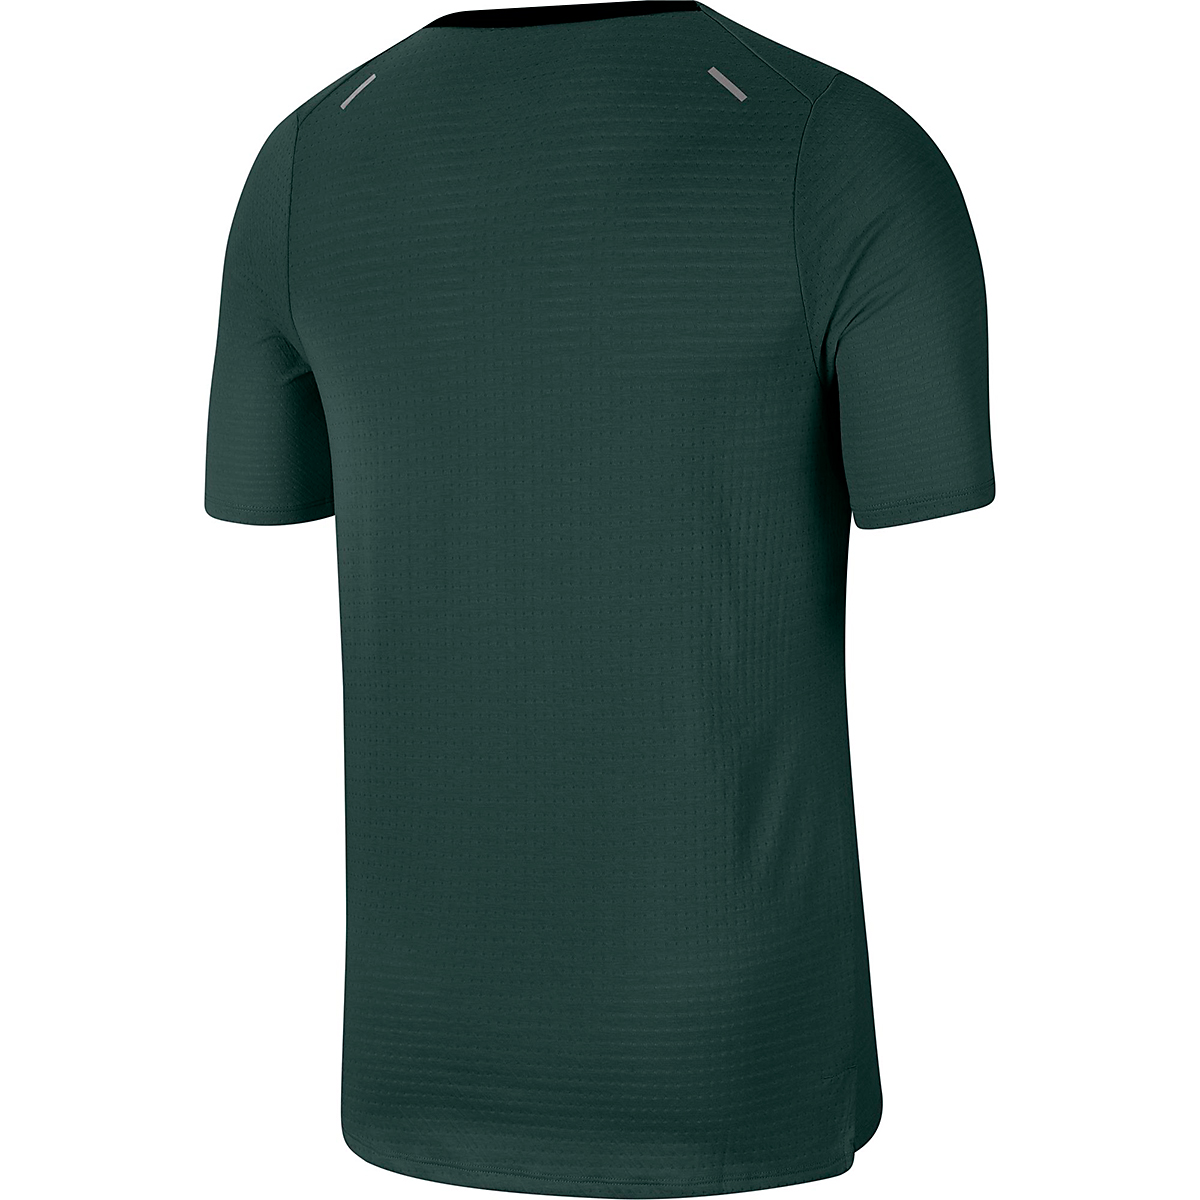 Men's Nike Rise 365 Running Top - Color: Pro Green - Size: S, Pro Green, large, image 2